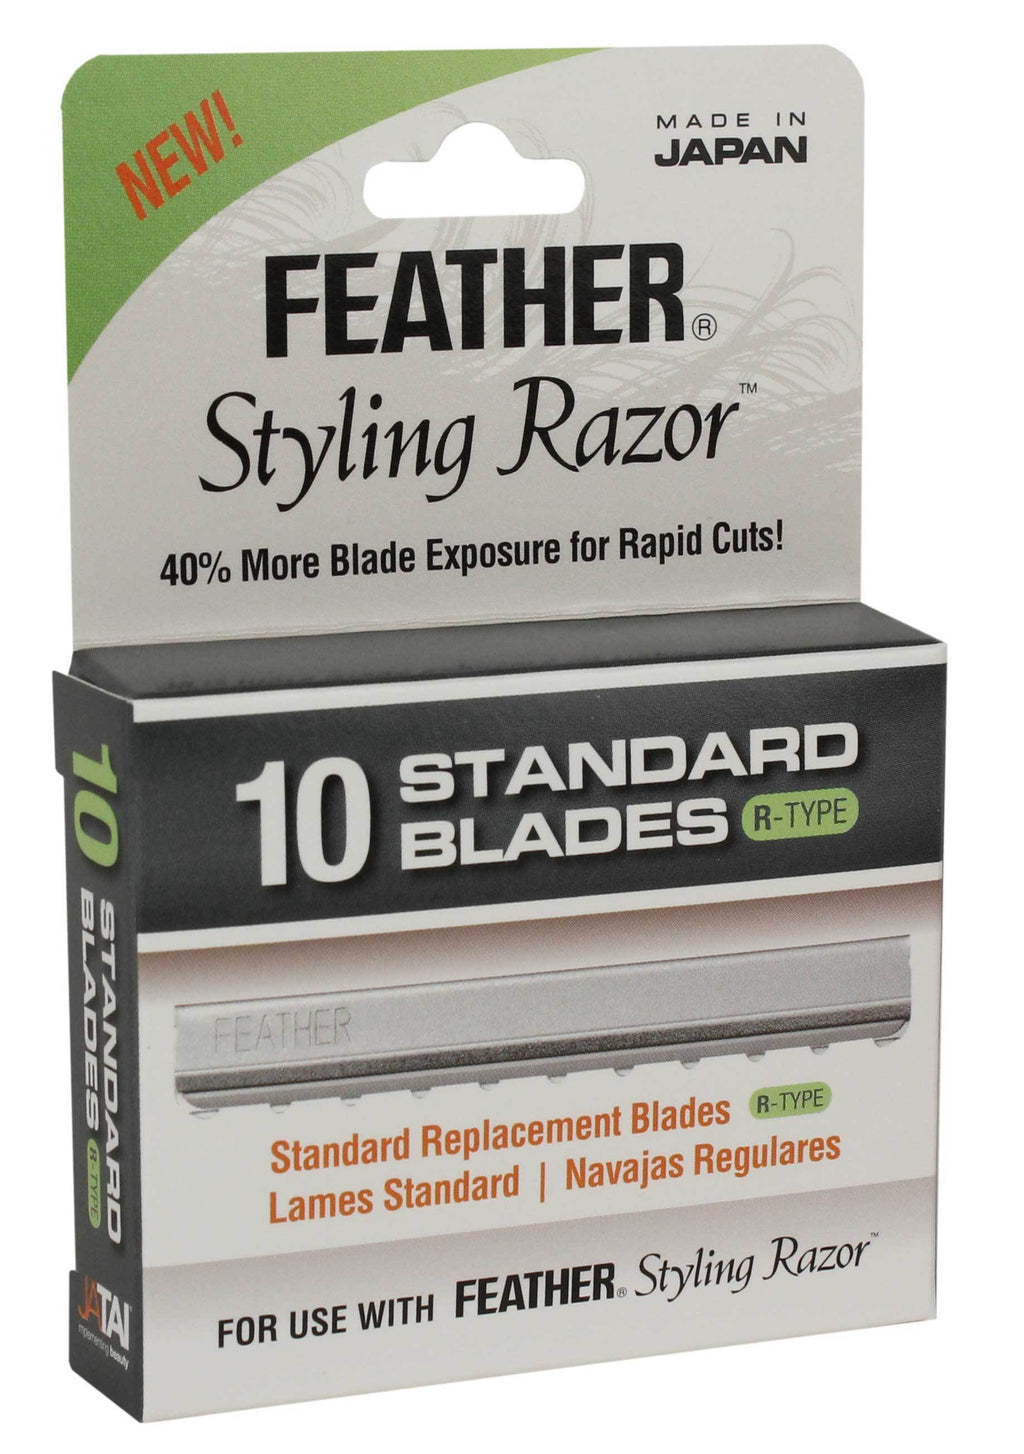 Feather Standard Blades R-Type